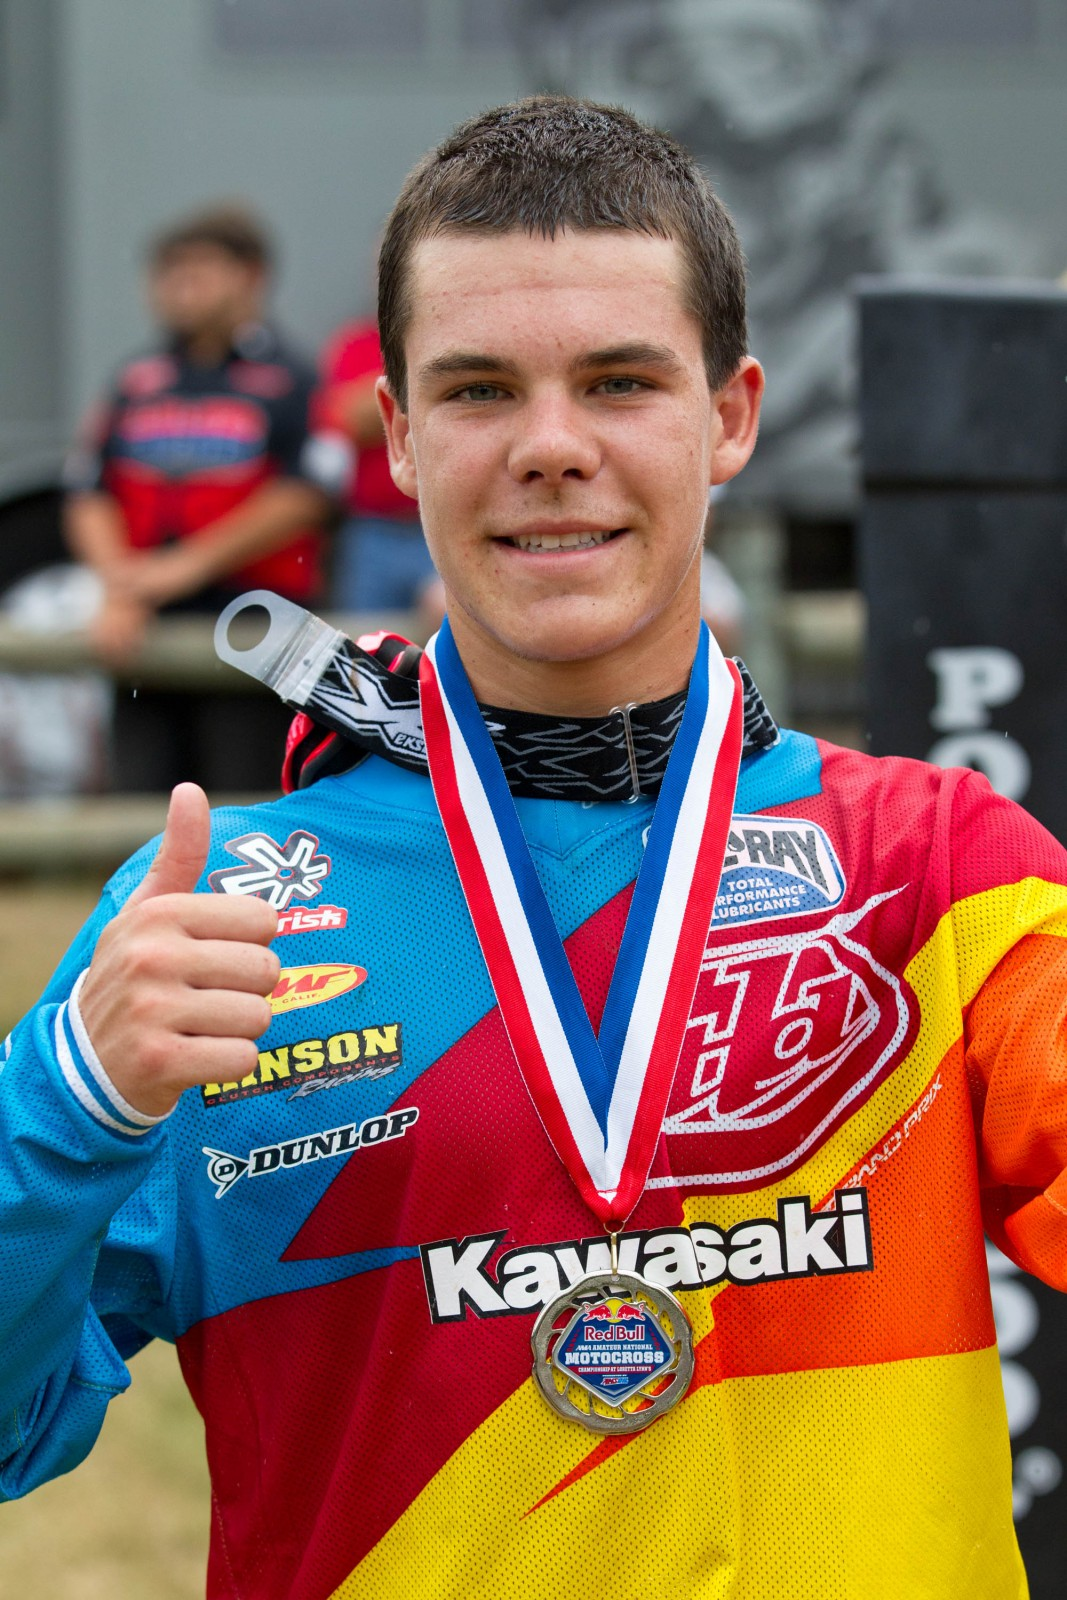 Savage went on to compete in a few races as a pro and now helps train Ken Roczen and several other pros.